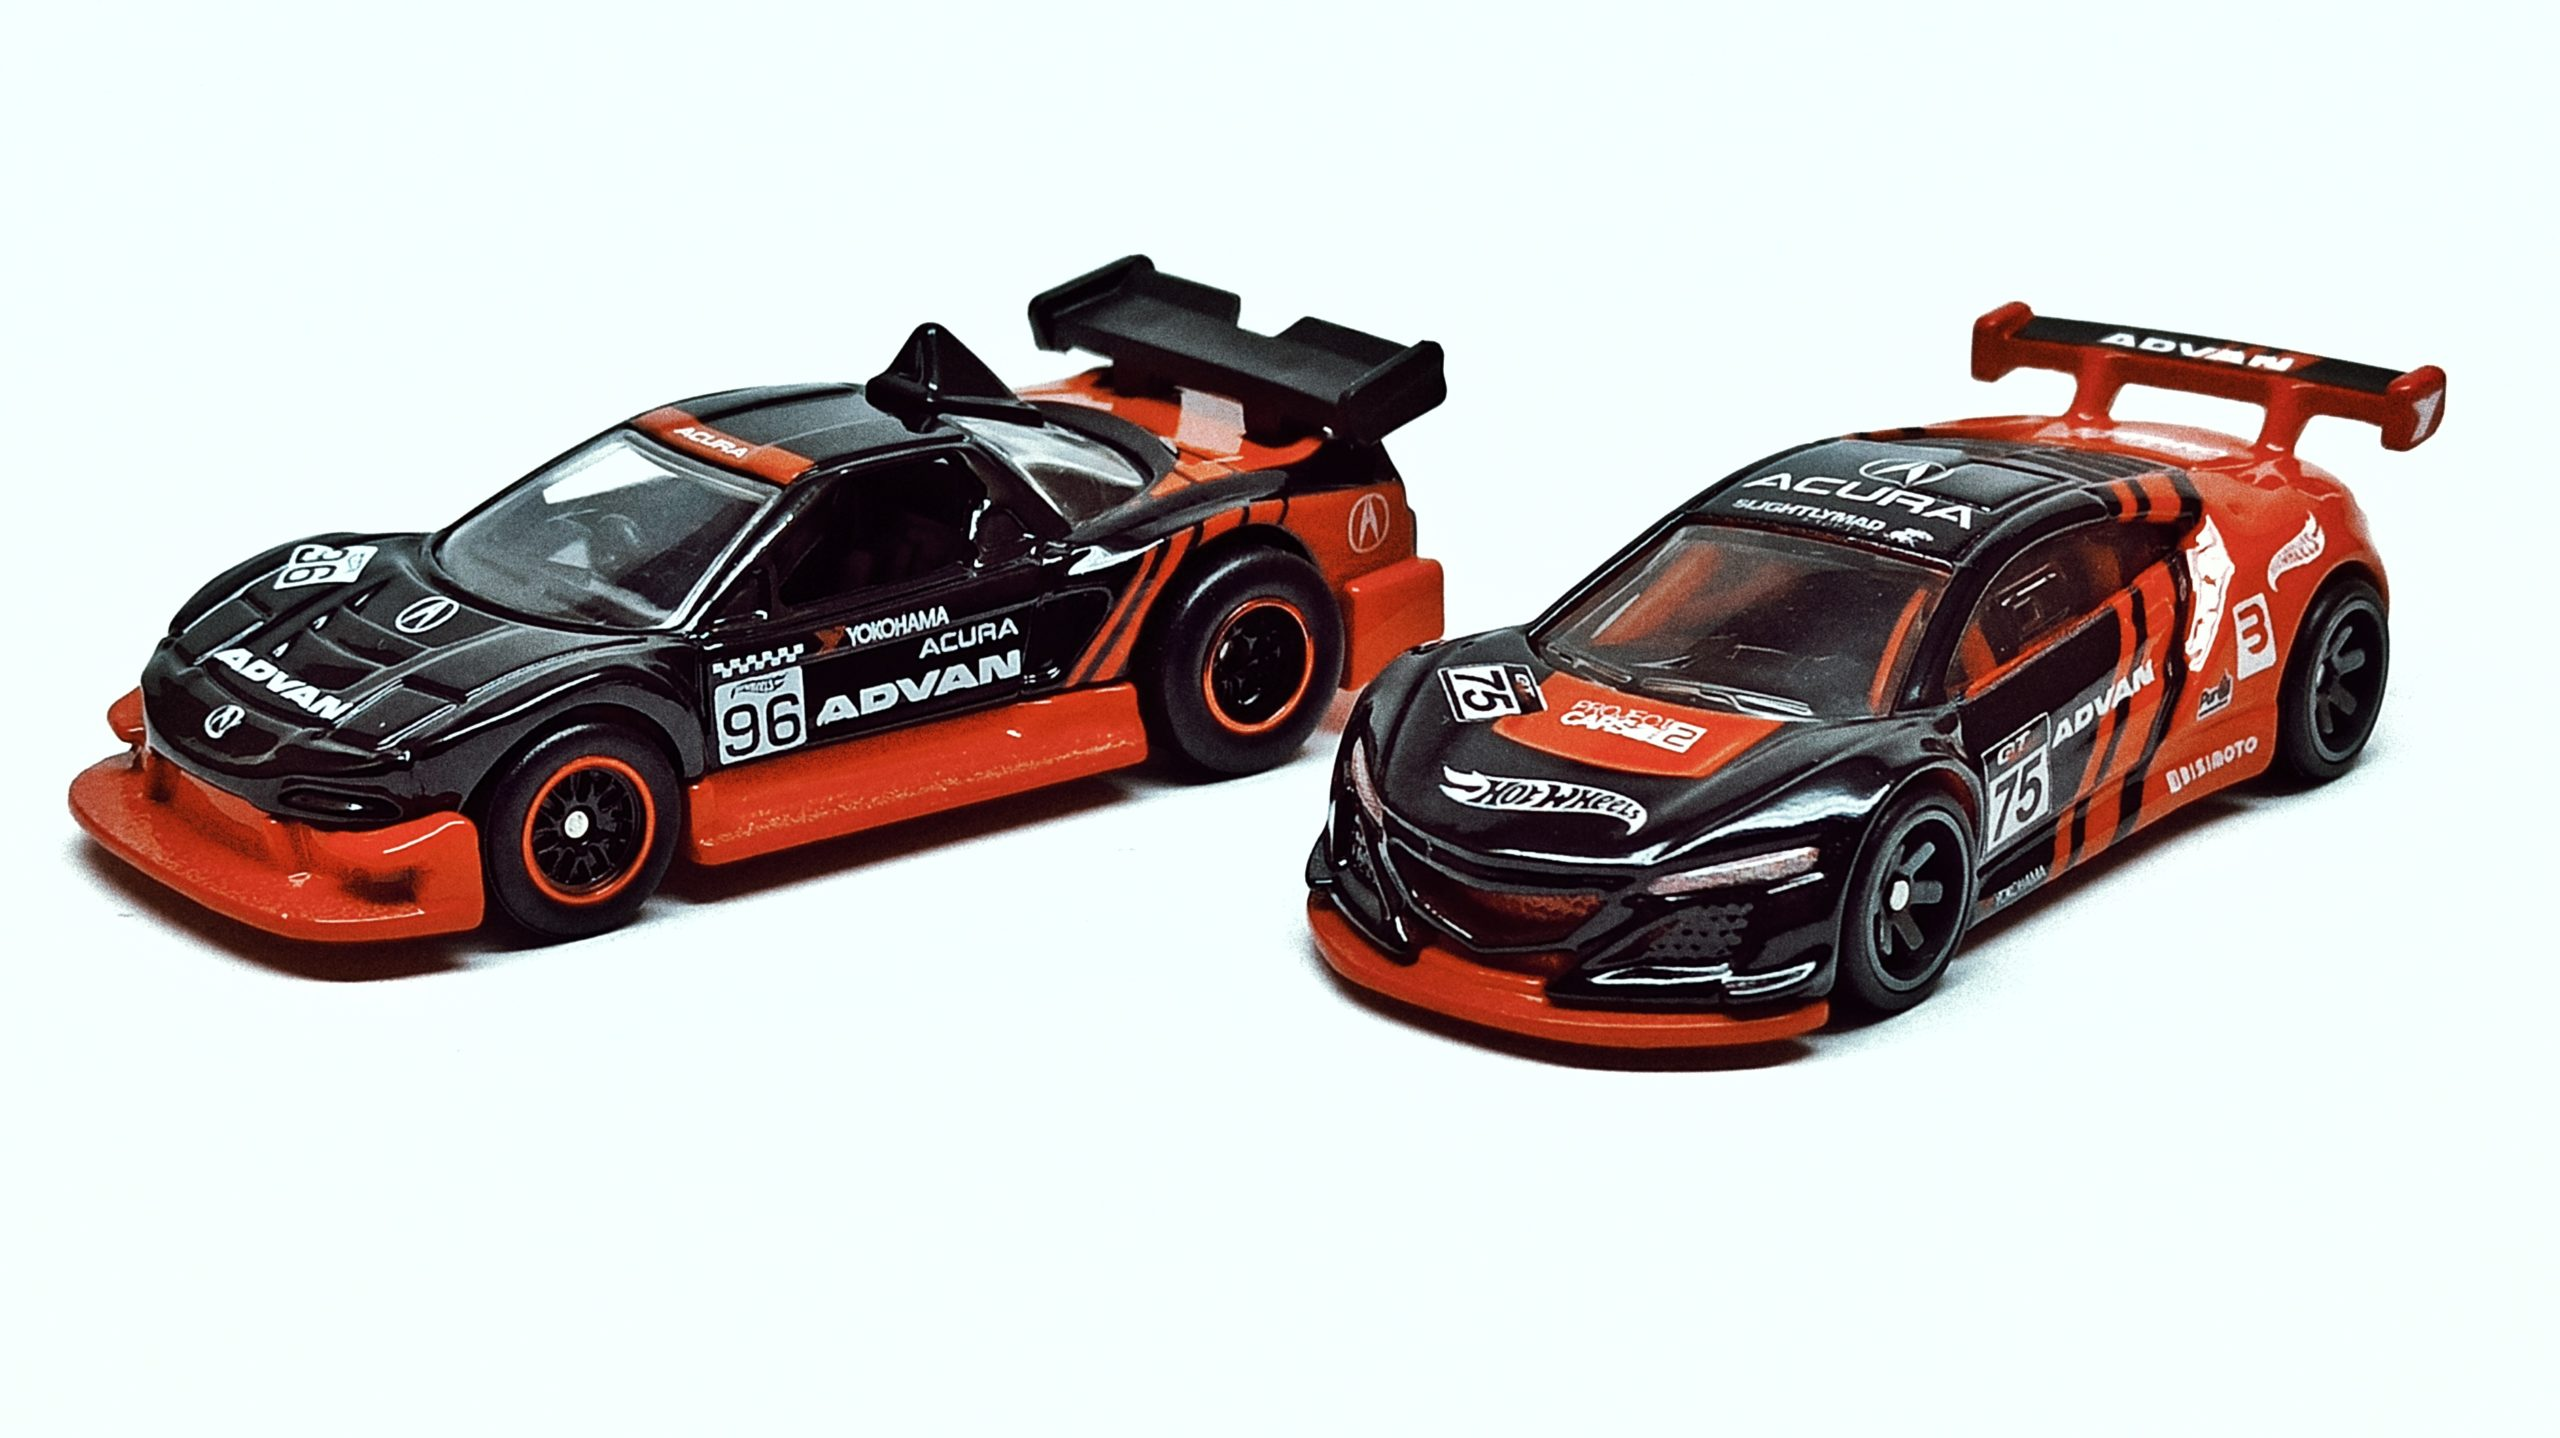 Hot Wheels Acura NSX GT3 (FLD22) 2019 Replica Entertainment: Project Cars 2 black side angle